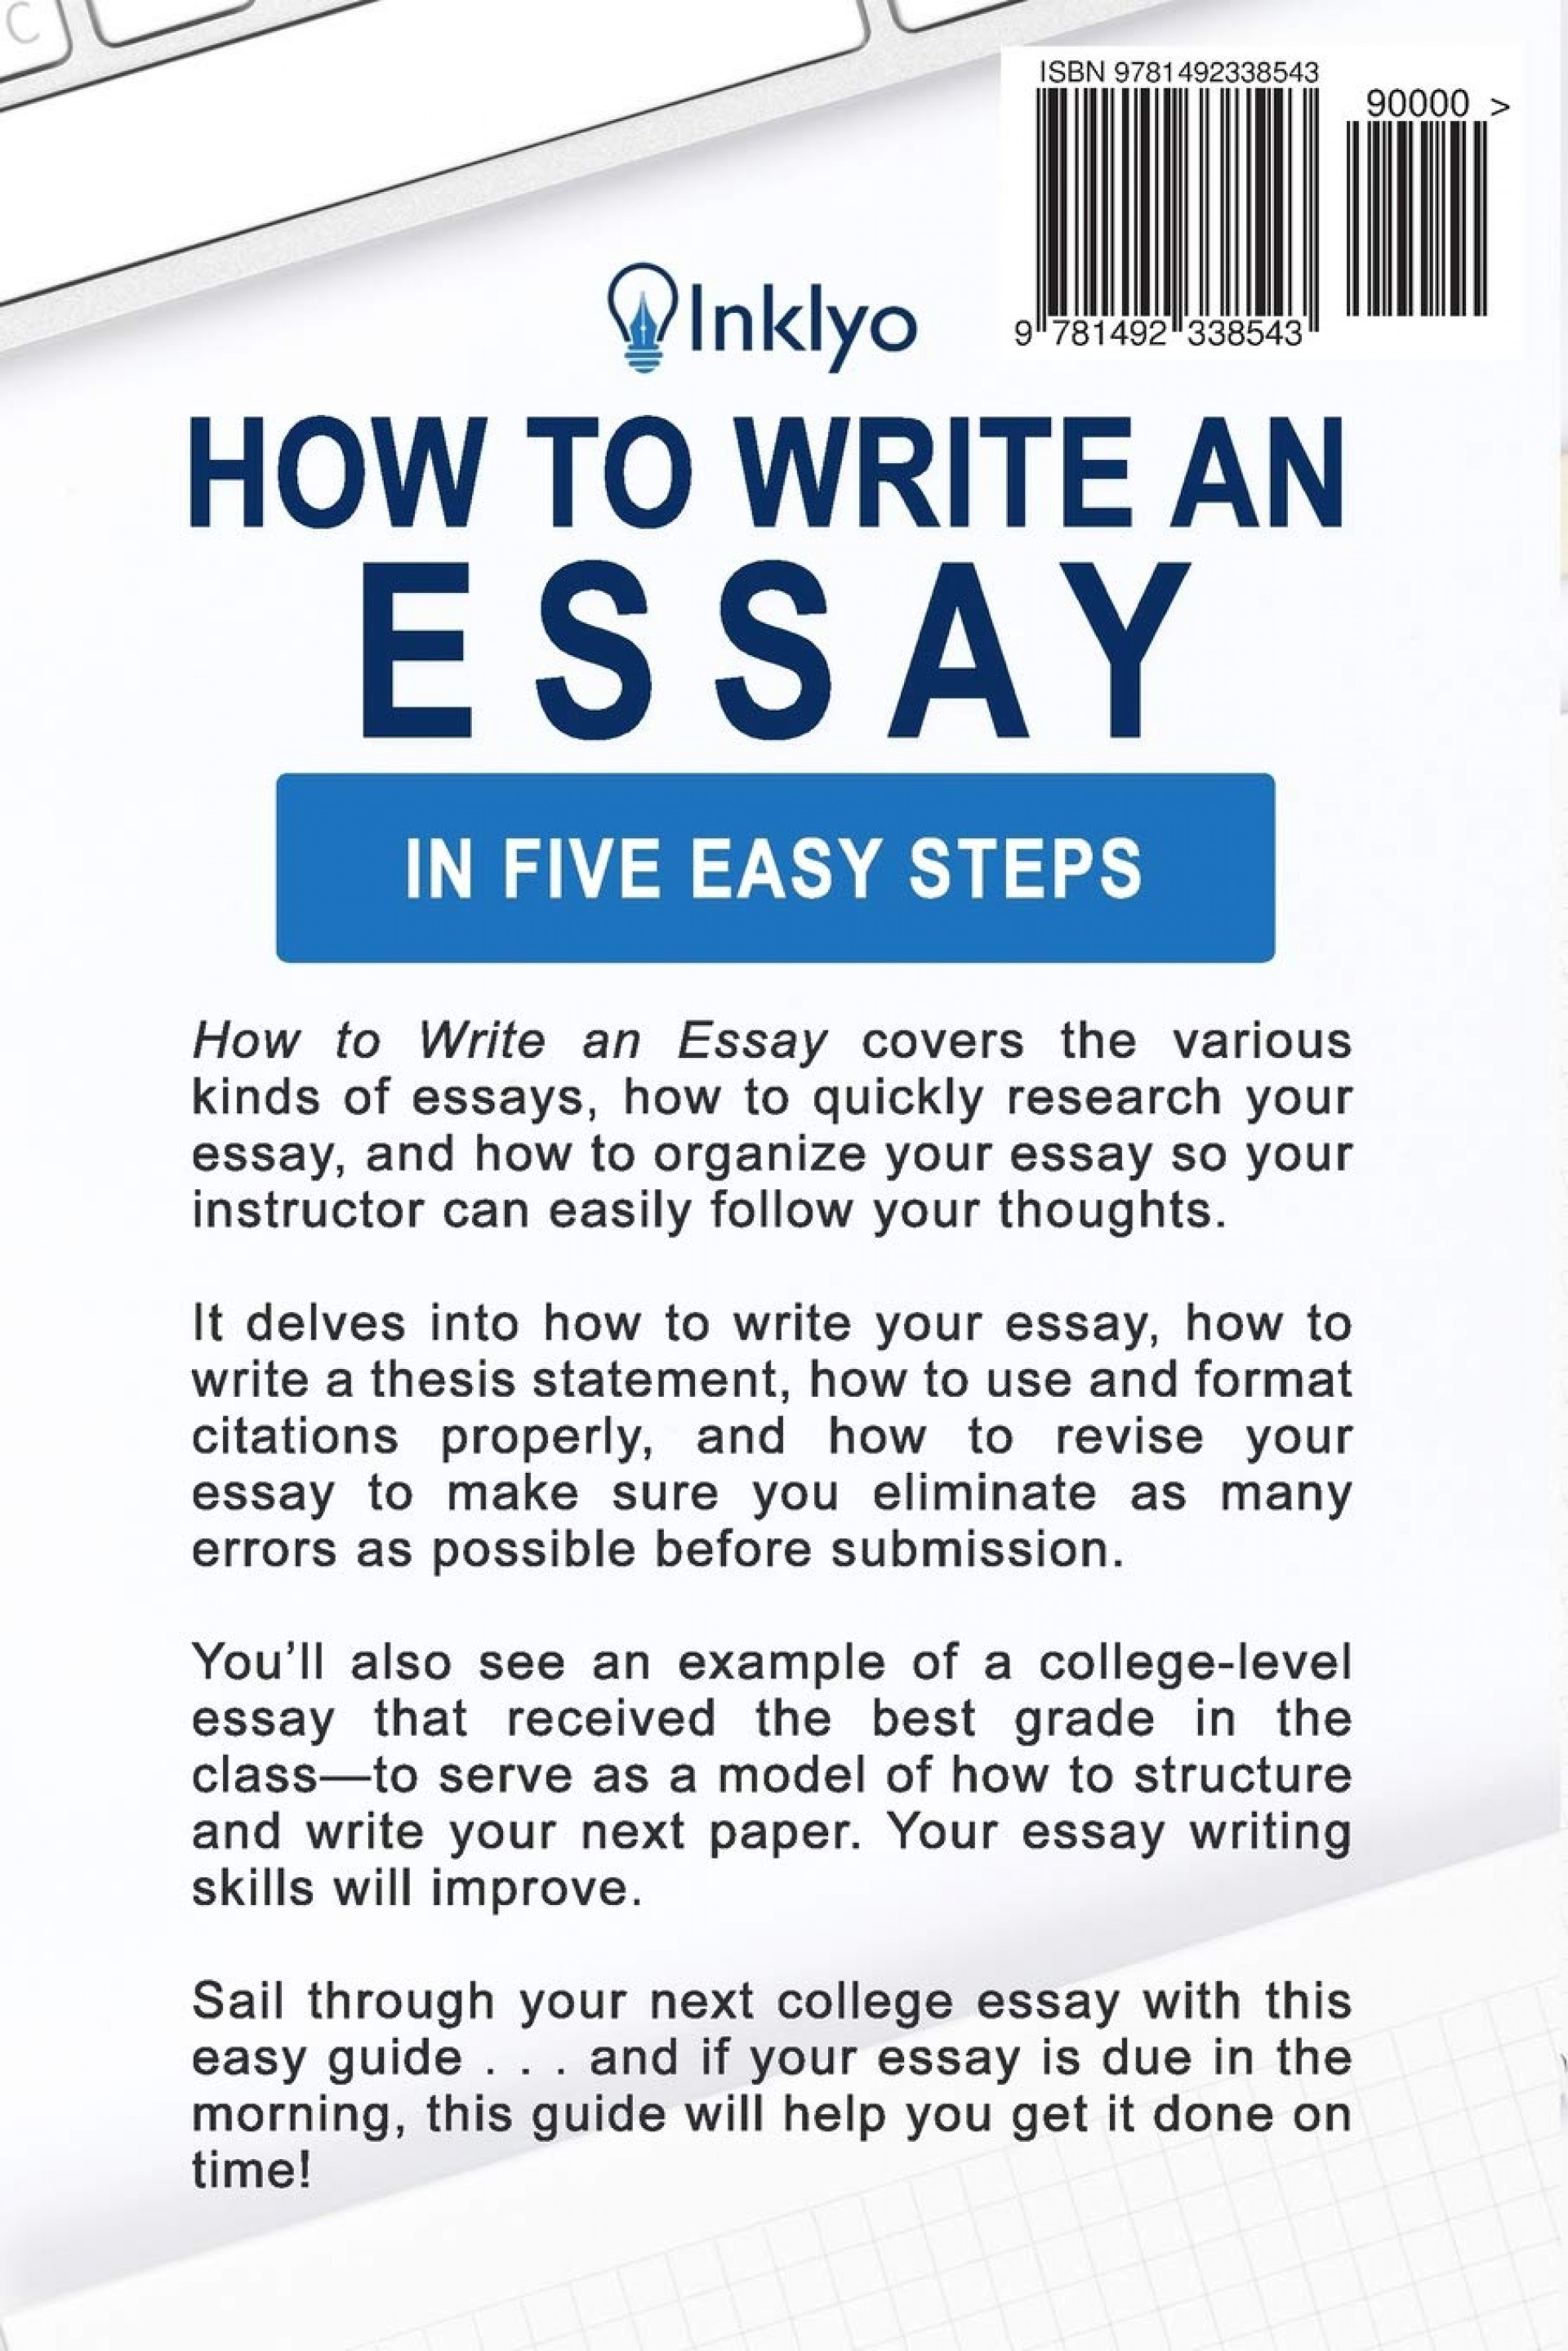 003 How To Write Essay Example Archaicawful A In College Level Business Narrative Outline 1920